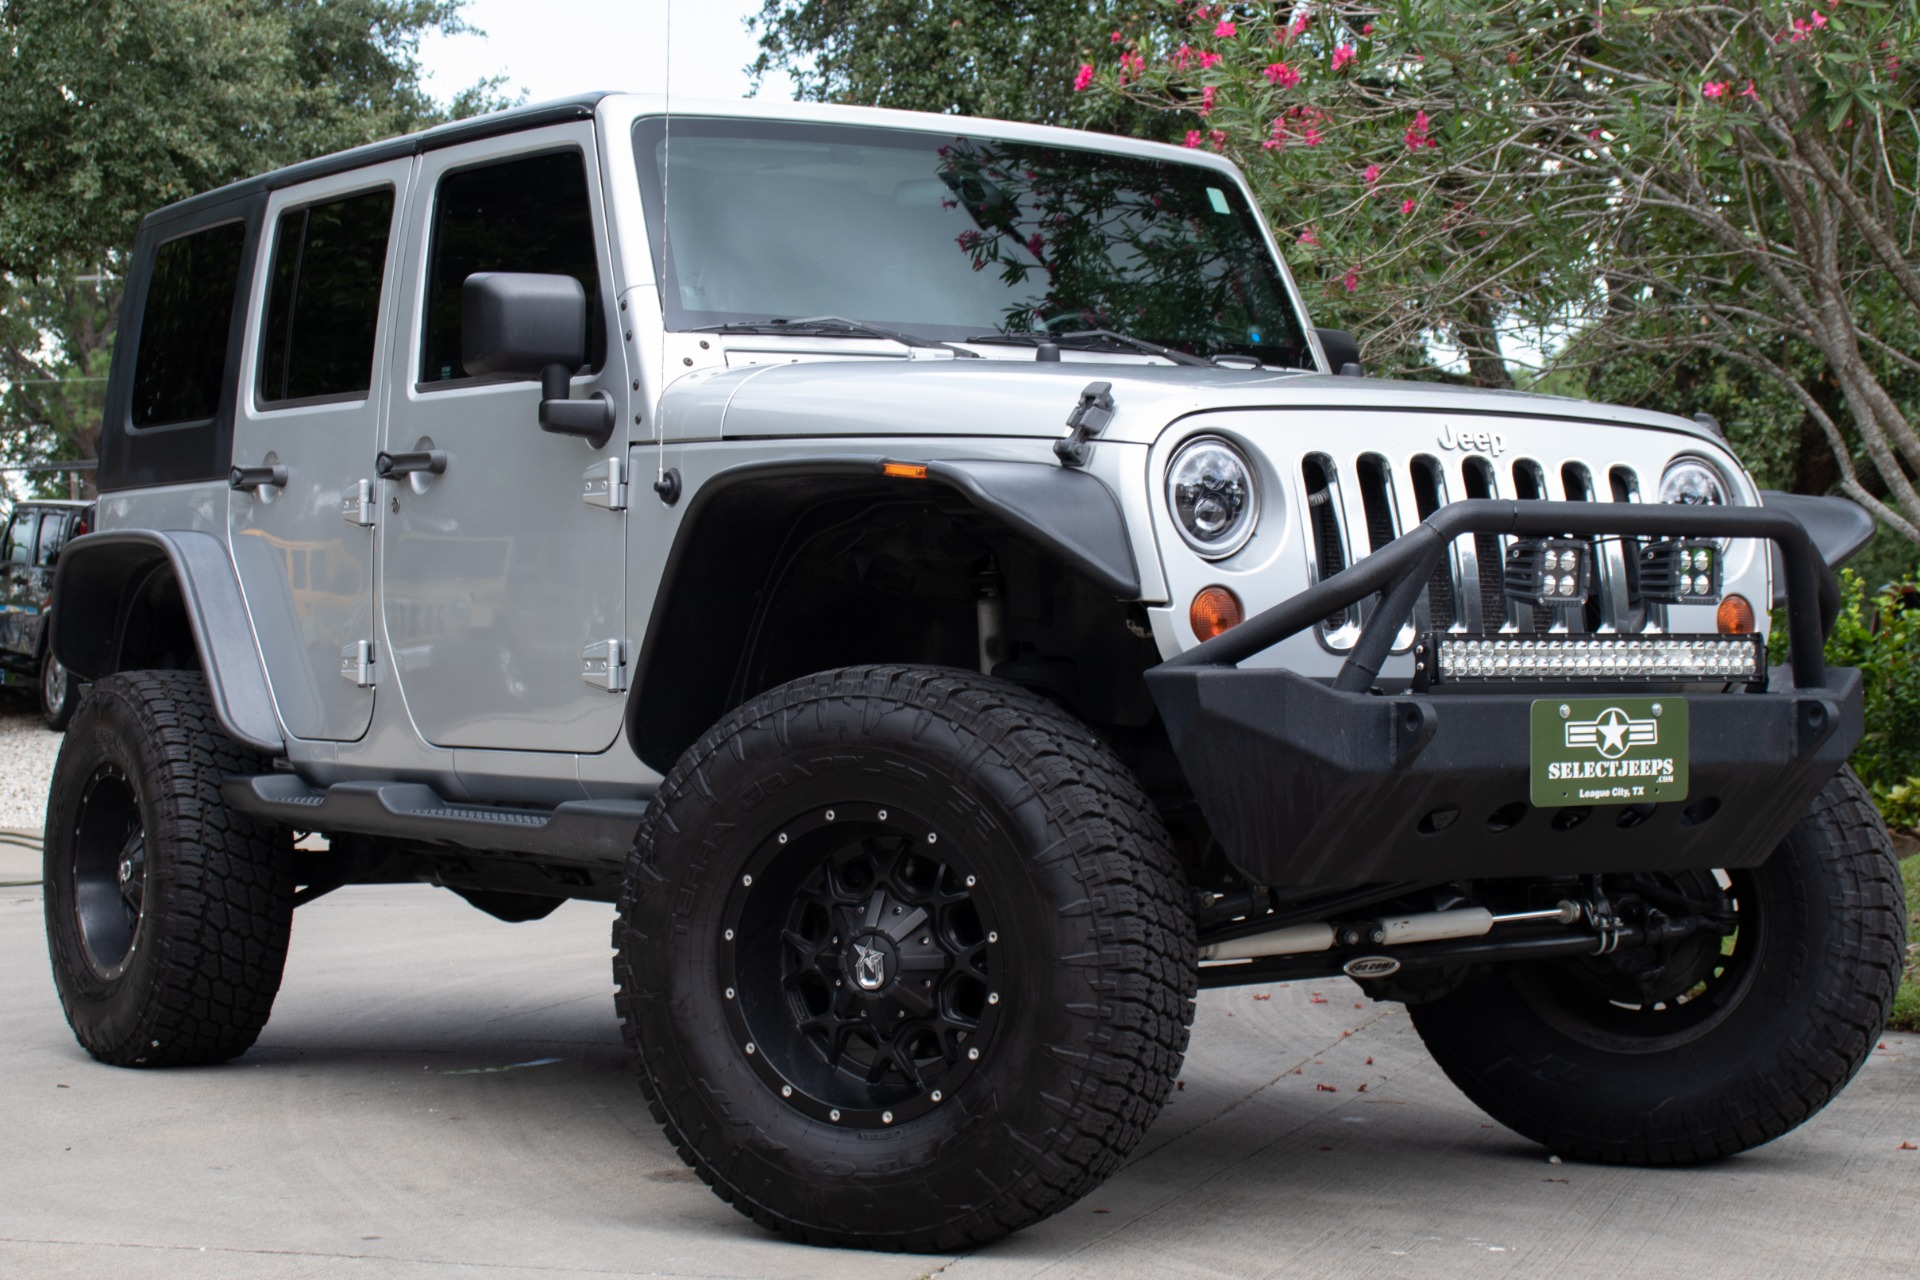 Used-2009-Jeep-Wrangler-Unlimited-Sahara